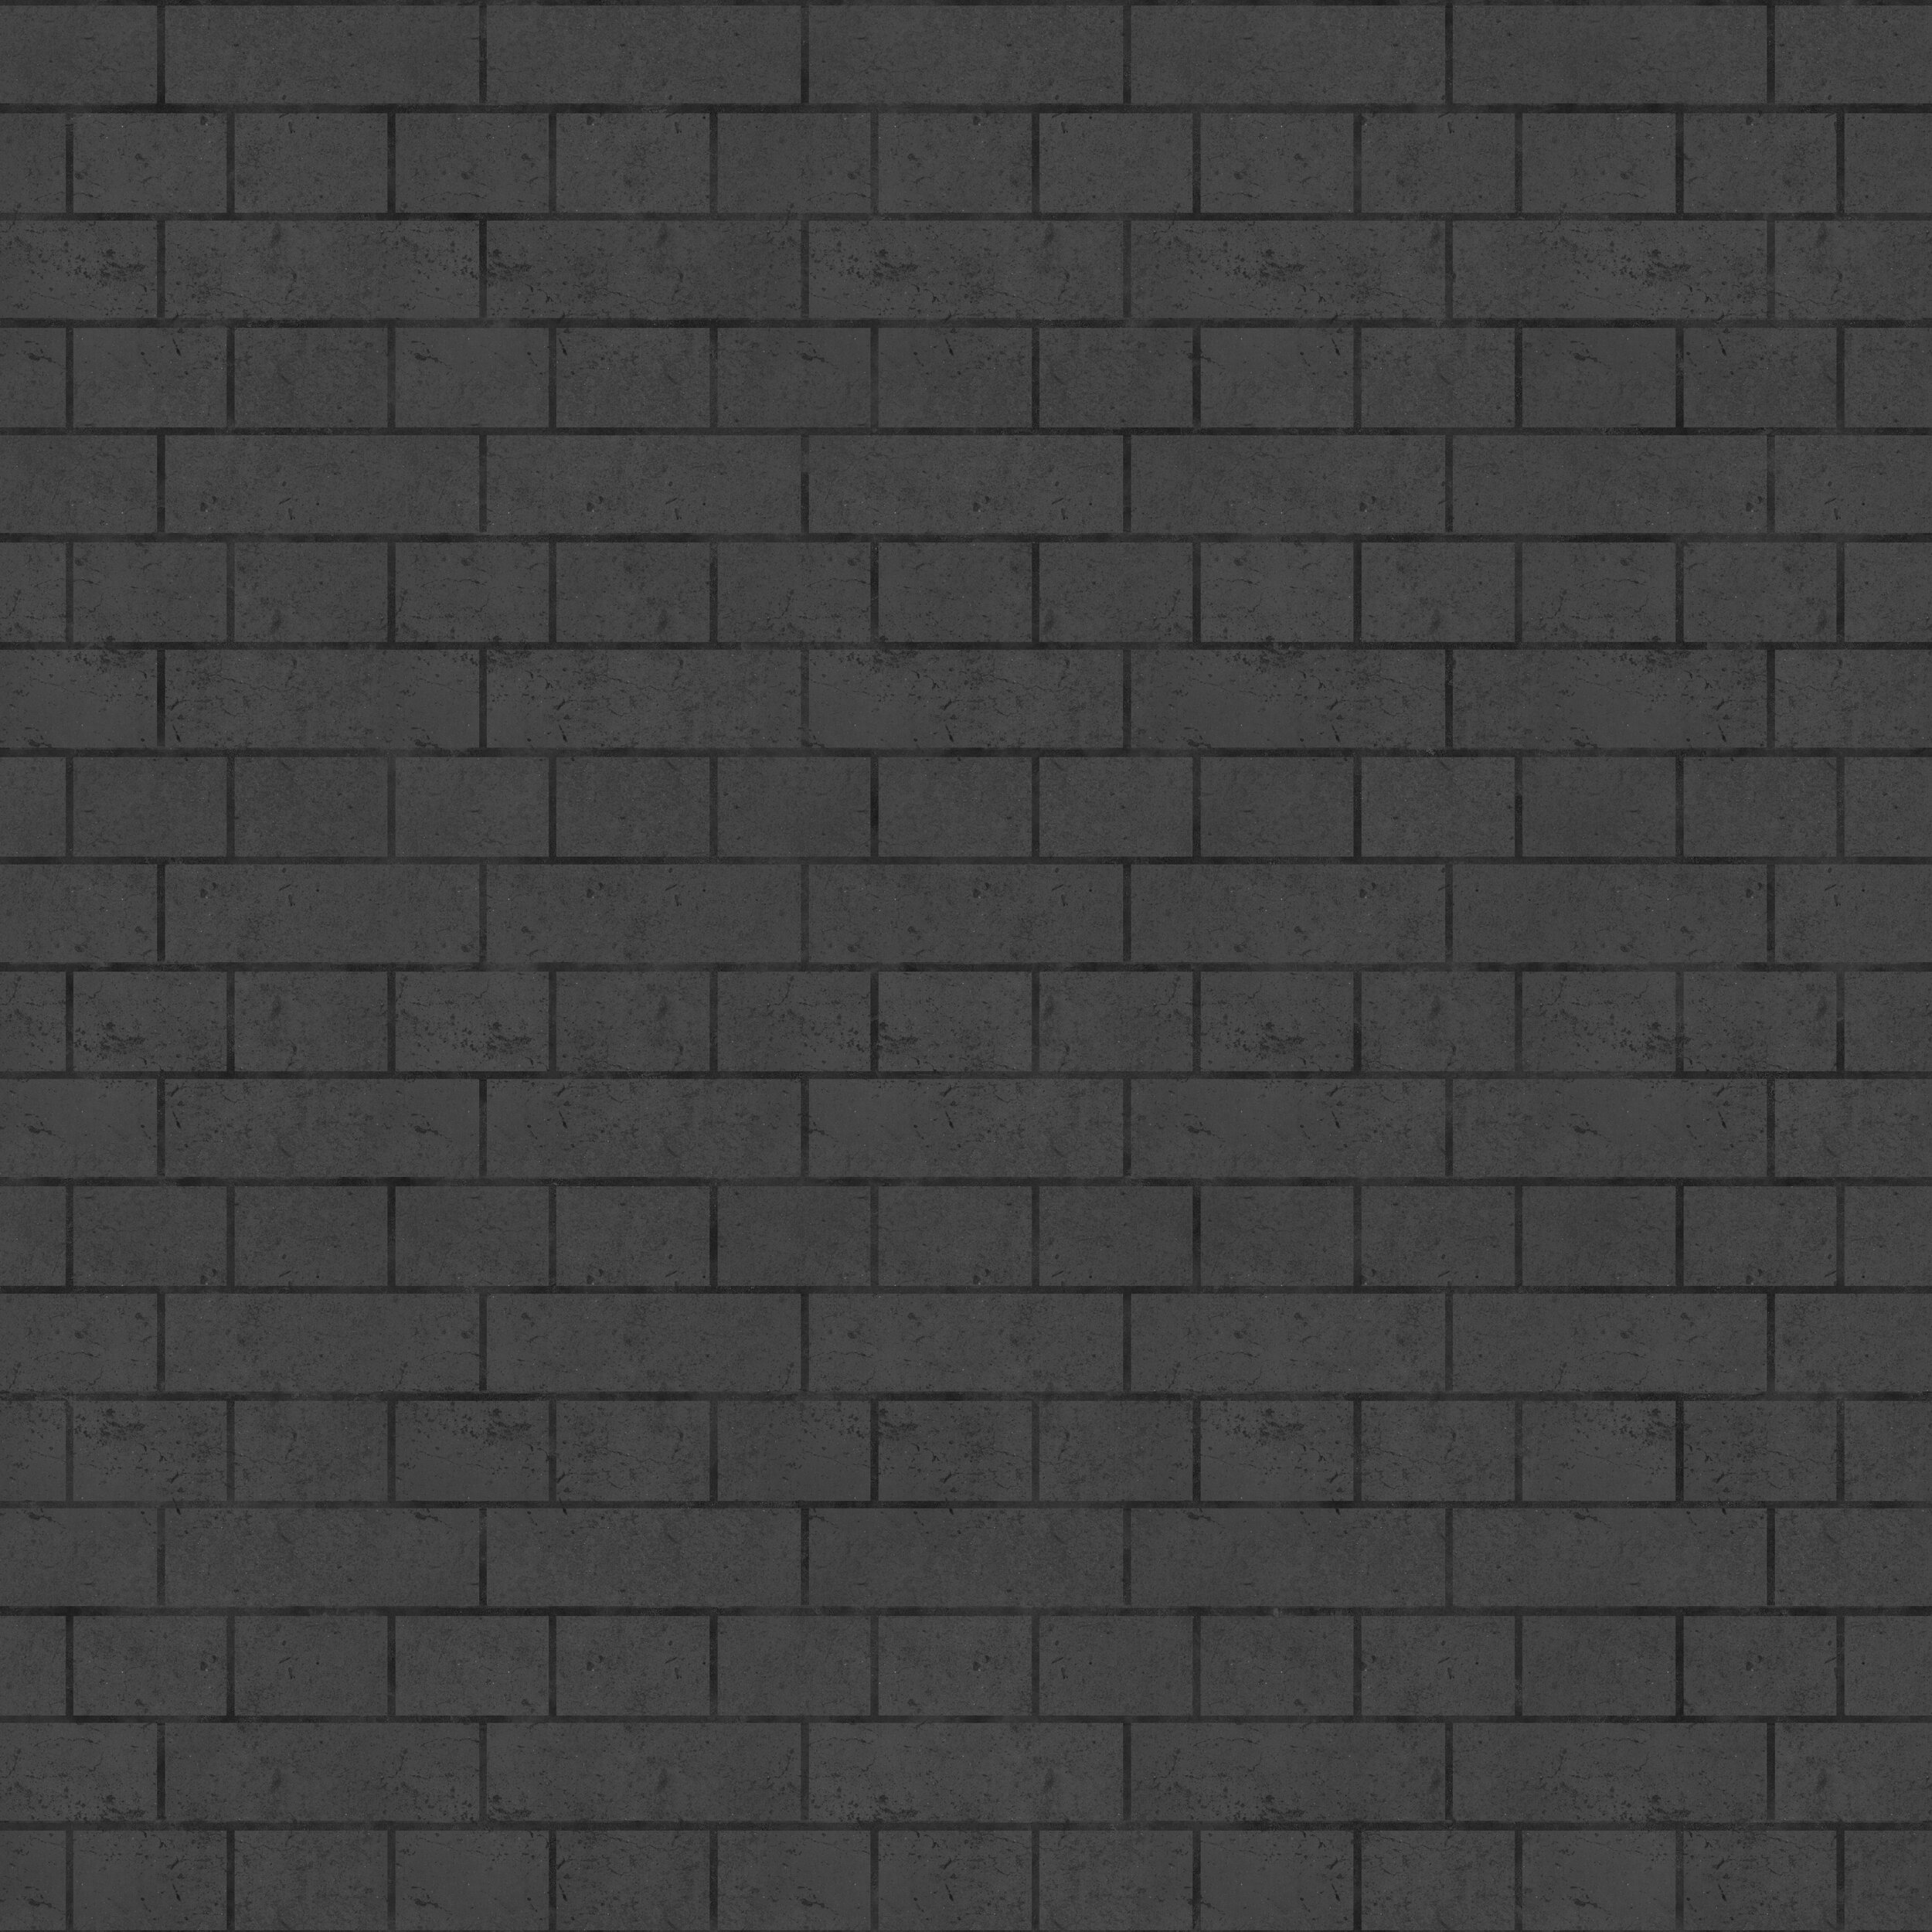 Bricks_AI_01C_Gray_GLOSS.jpg